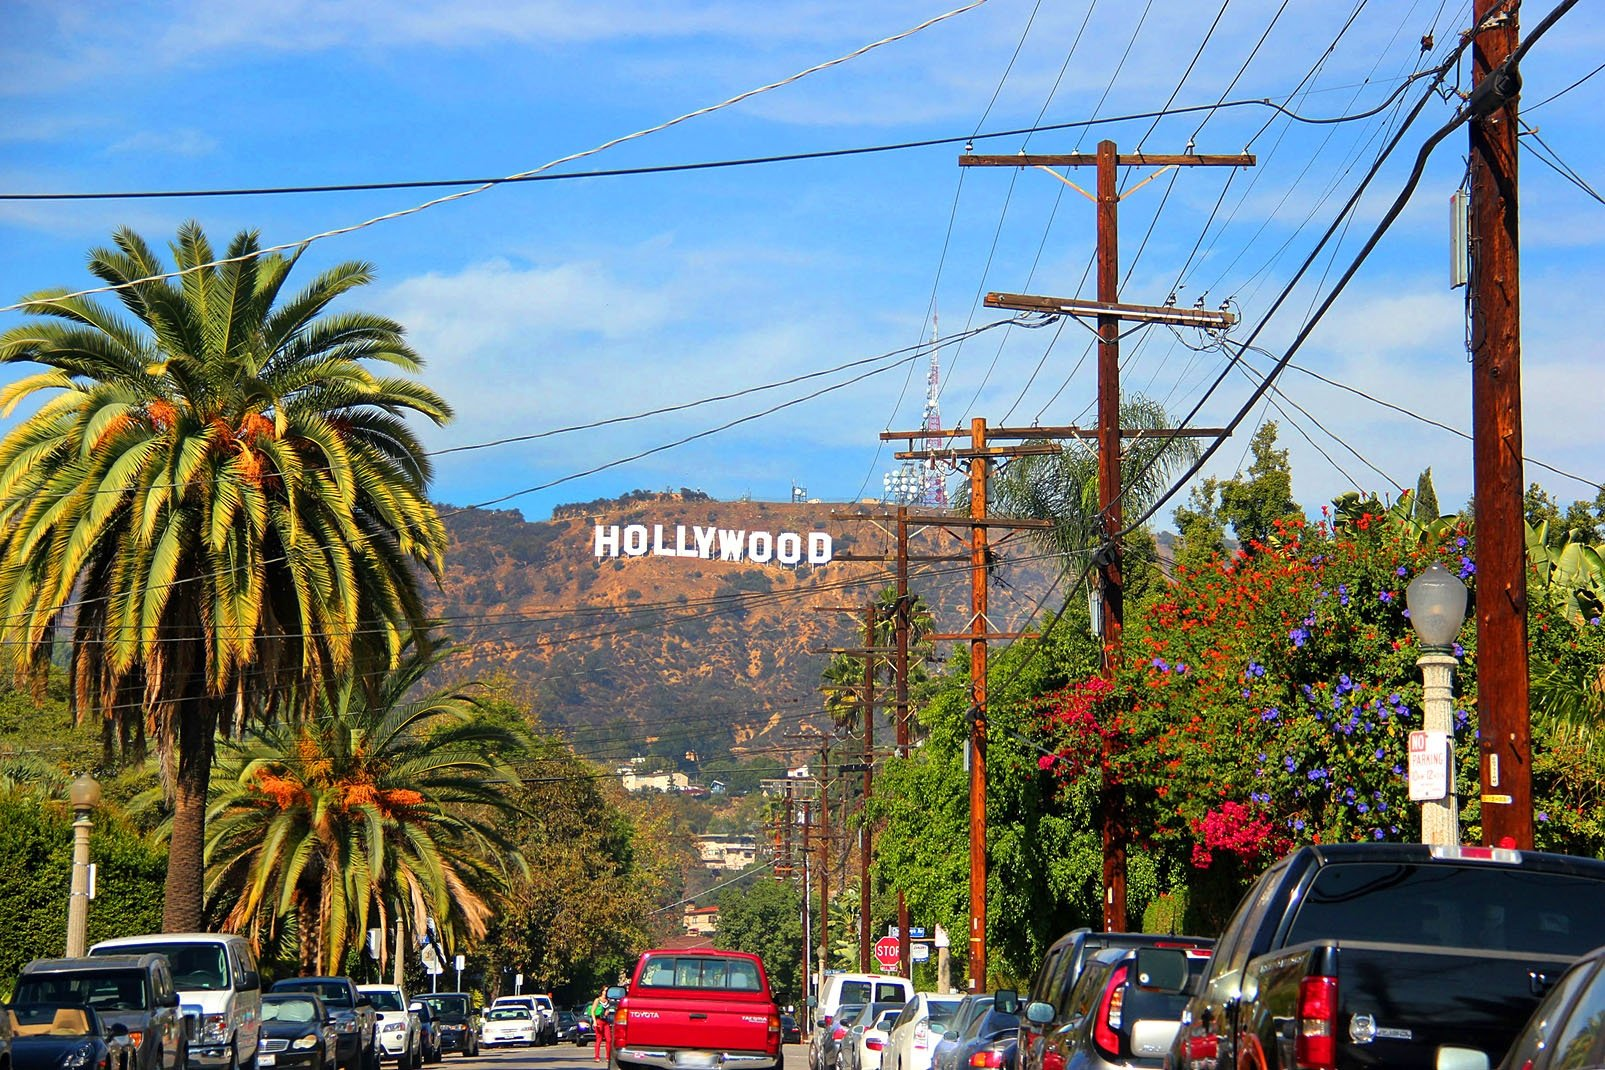 Etats-Unis, Amérique, Californie, Los Angeles, Hollywood, Santa Monica